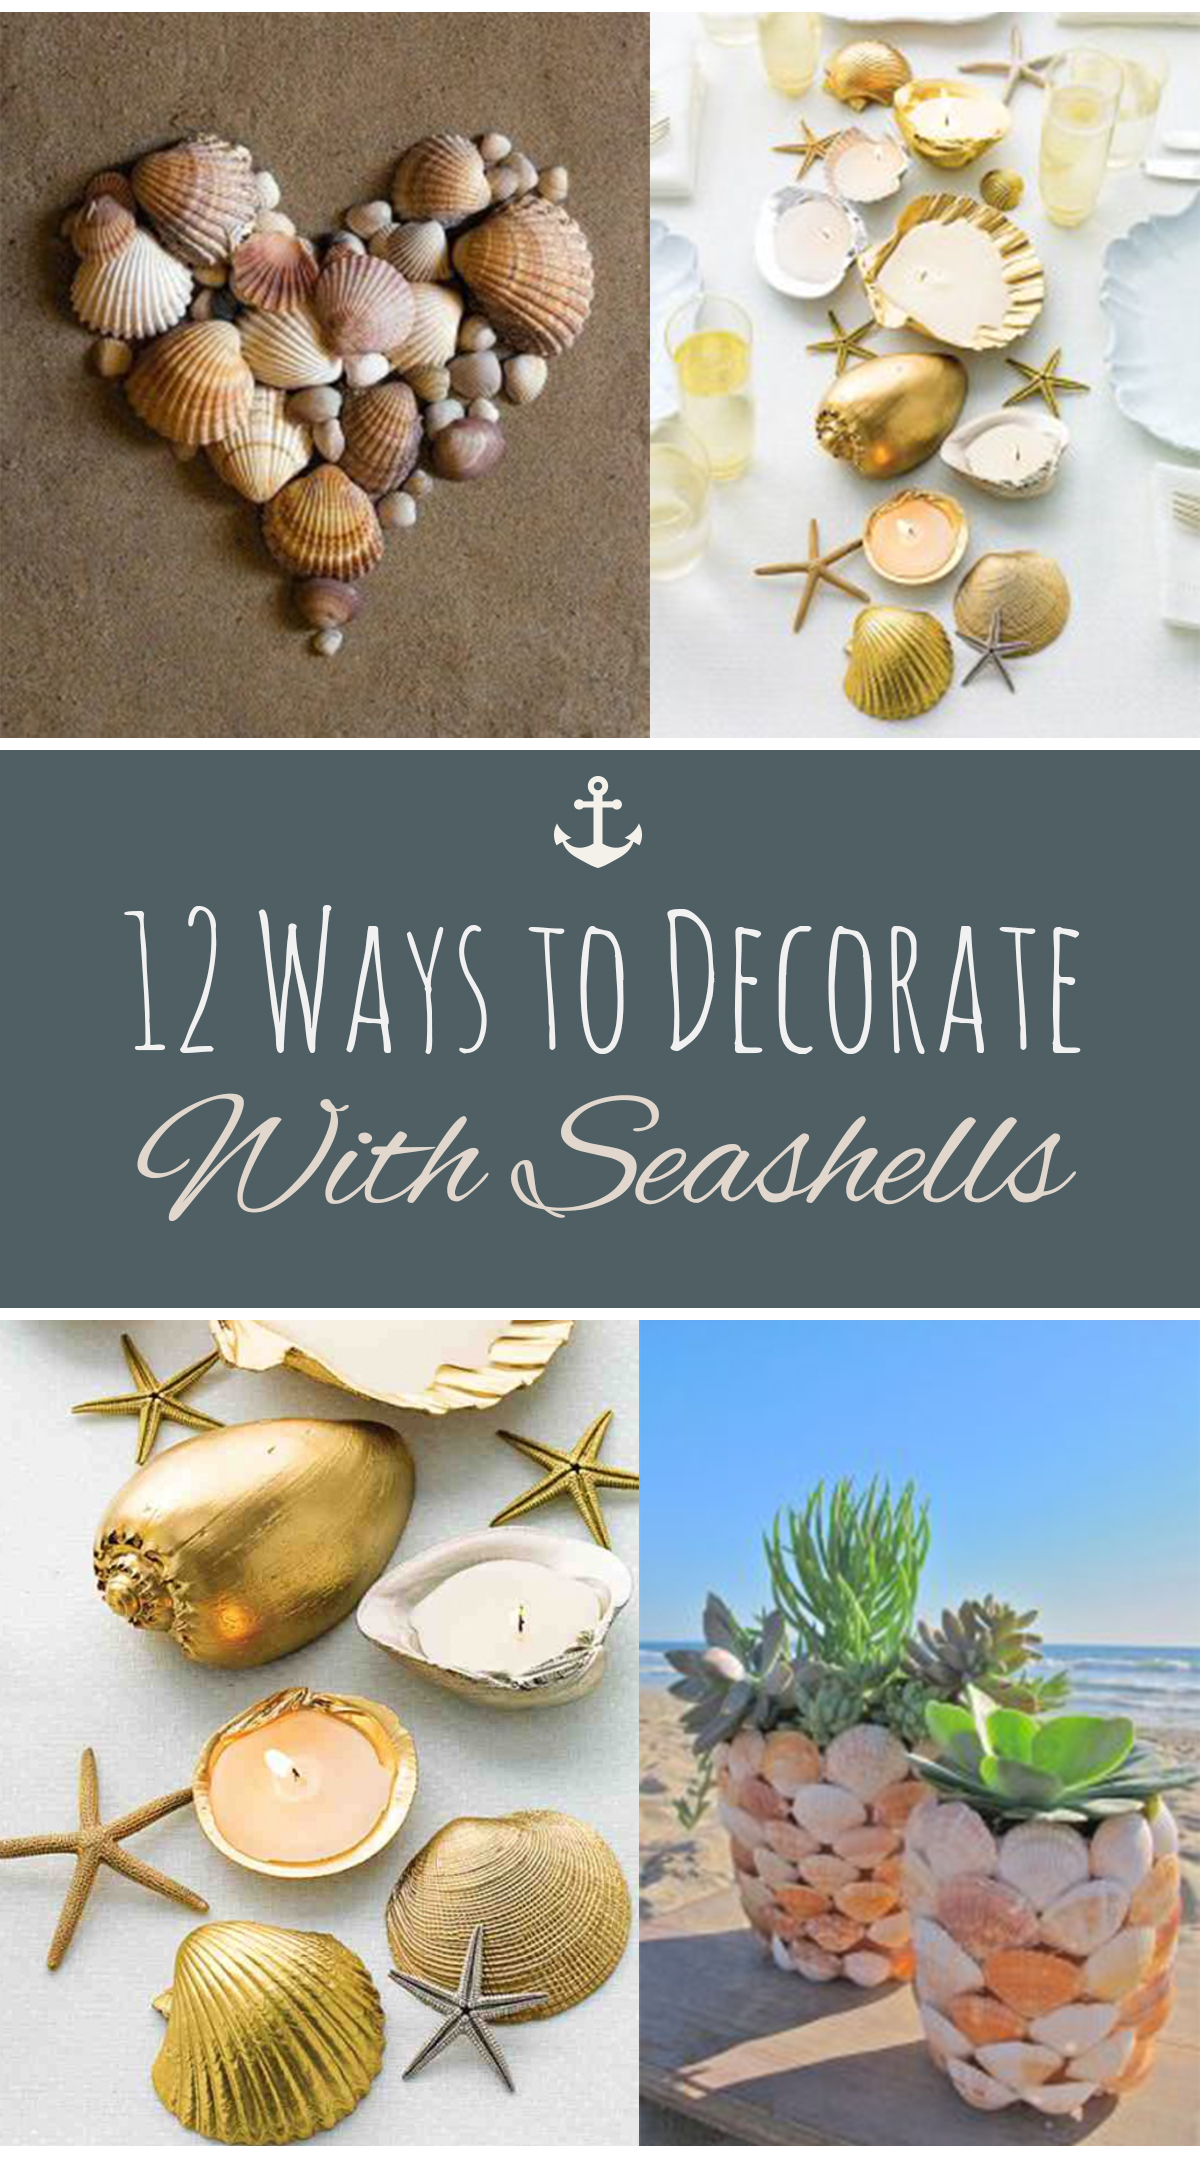 How to Decorate With Seashells, Seashell Decor, Decorating With Seashells, Seashell Decor Ideas, Popular Pin, DIY Home Decor, How to Decorate With Seashells. #DIYHome #DIYHomeDecor #CoastalHome #HomeDesign #Crafts #FunCrafts #EasyCraftProjects